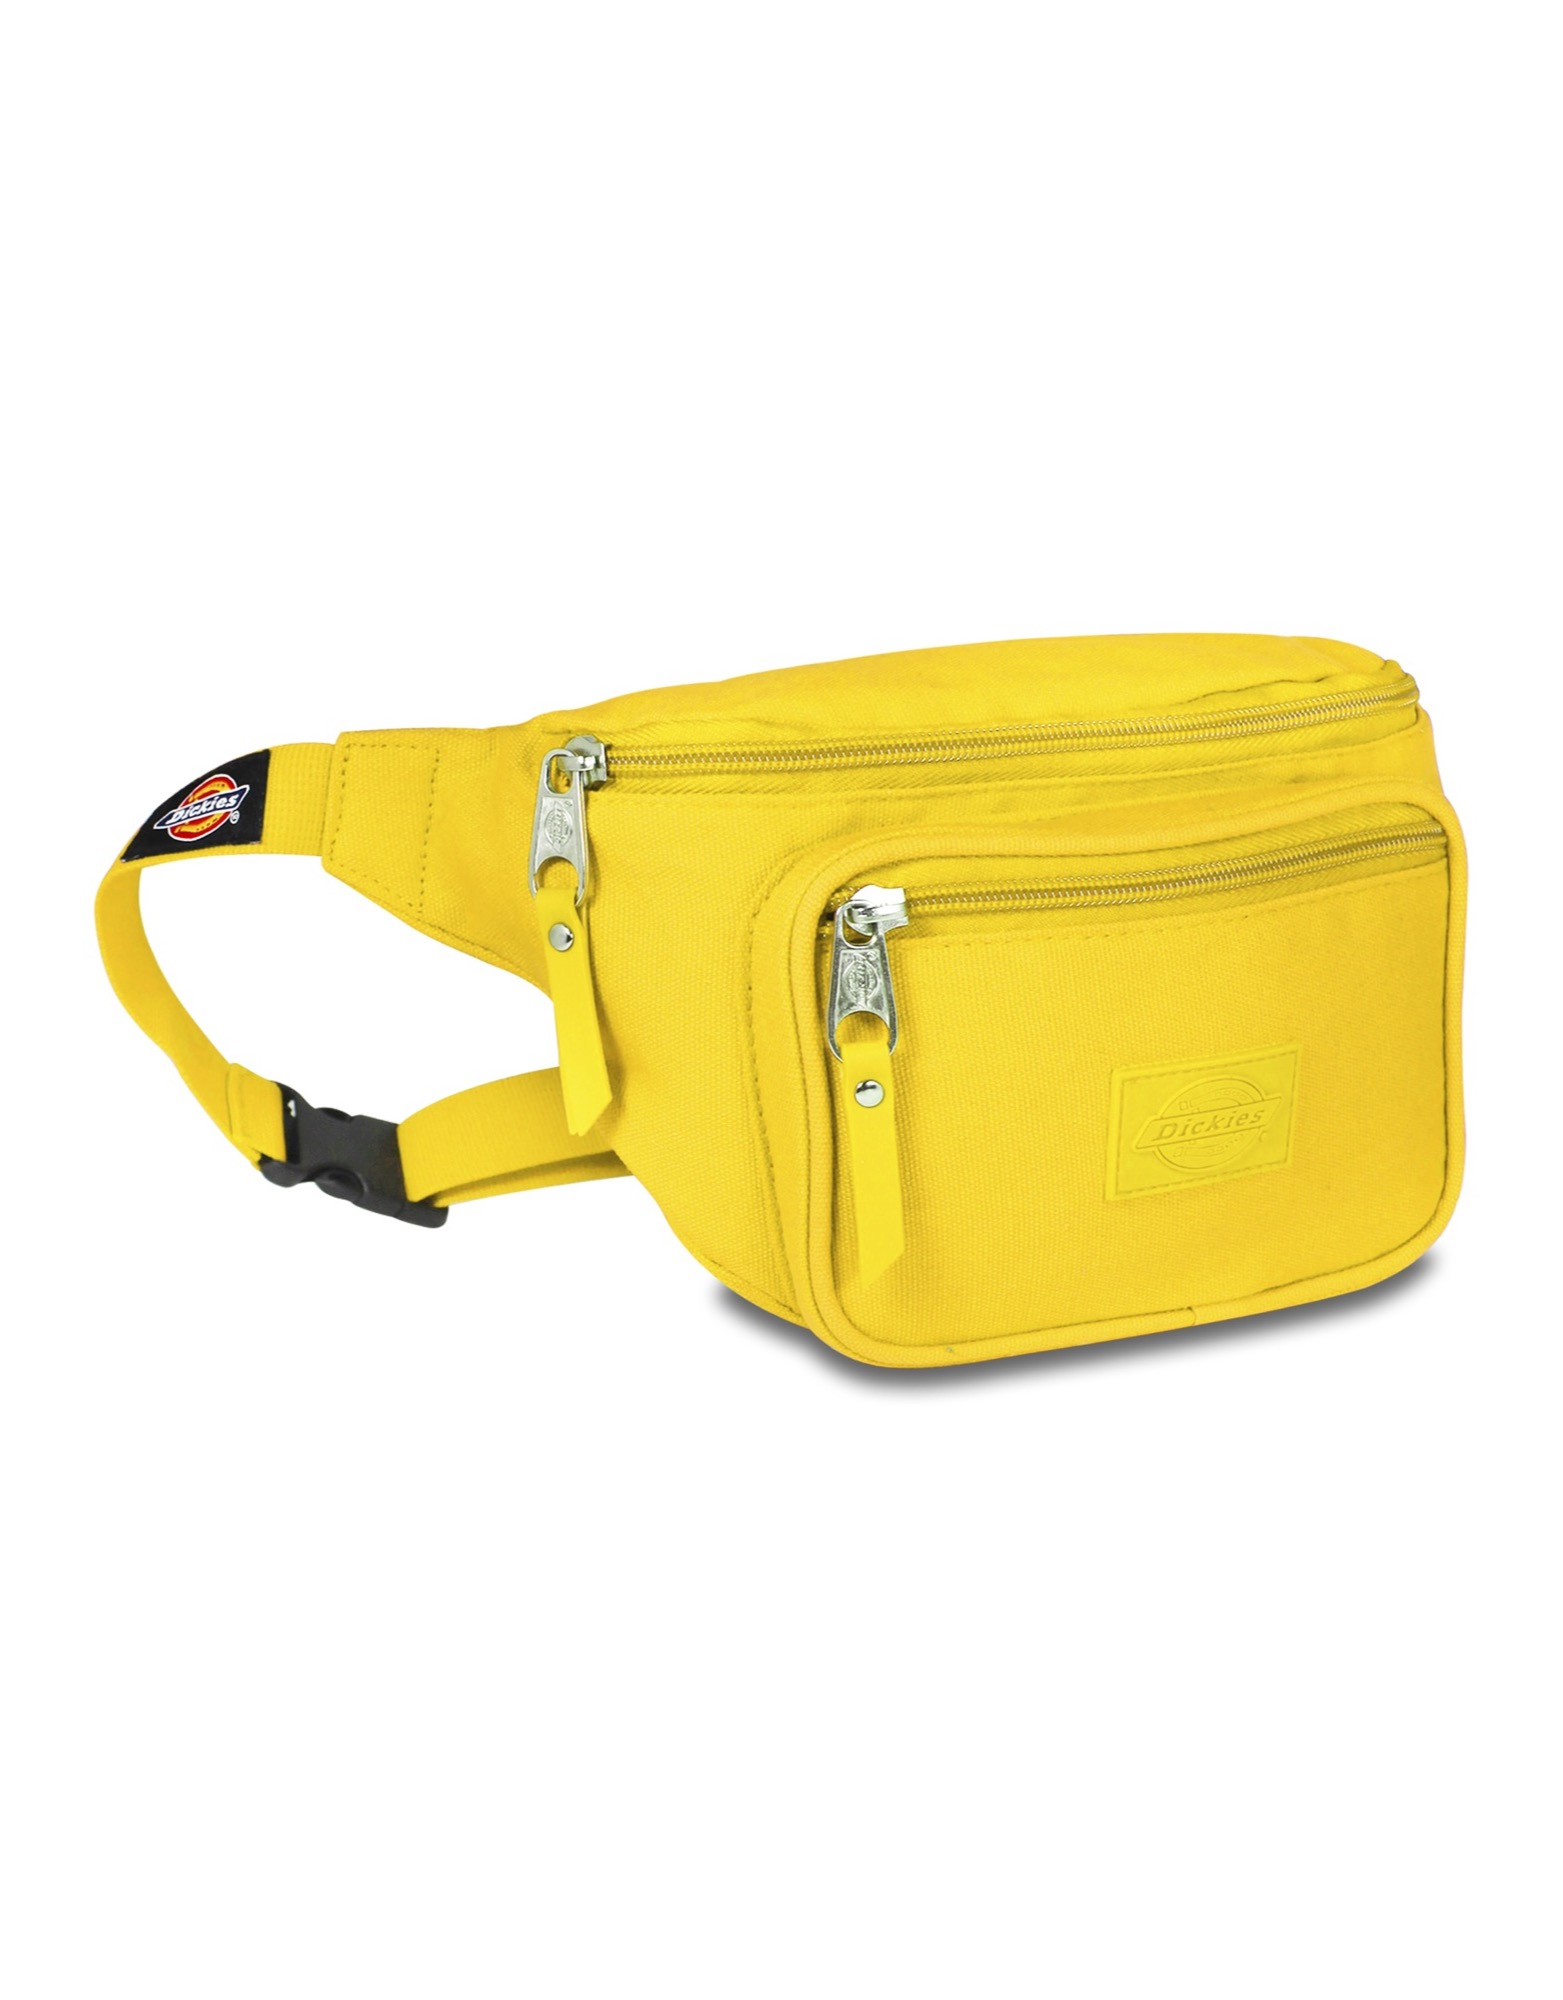 Cotton Canvas Fanny Pack - Yellow (YL)